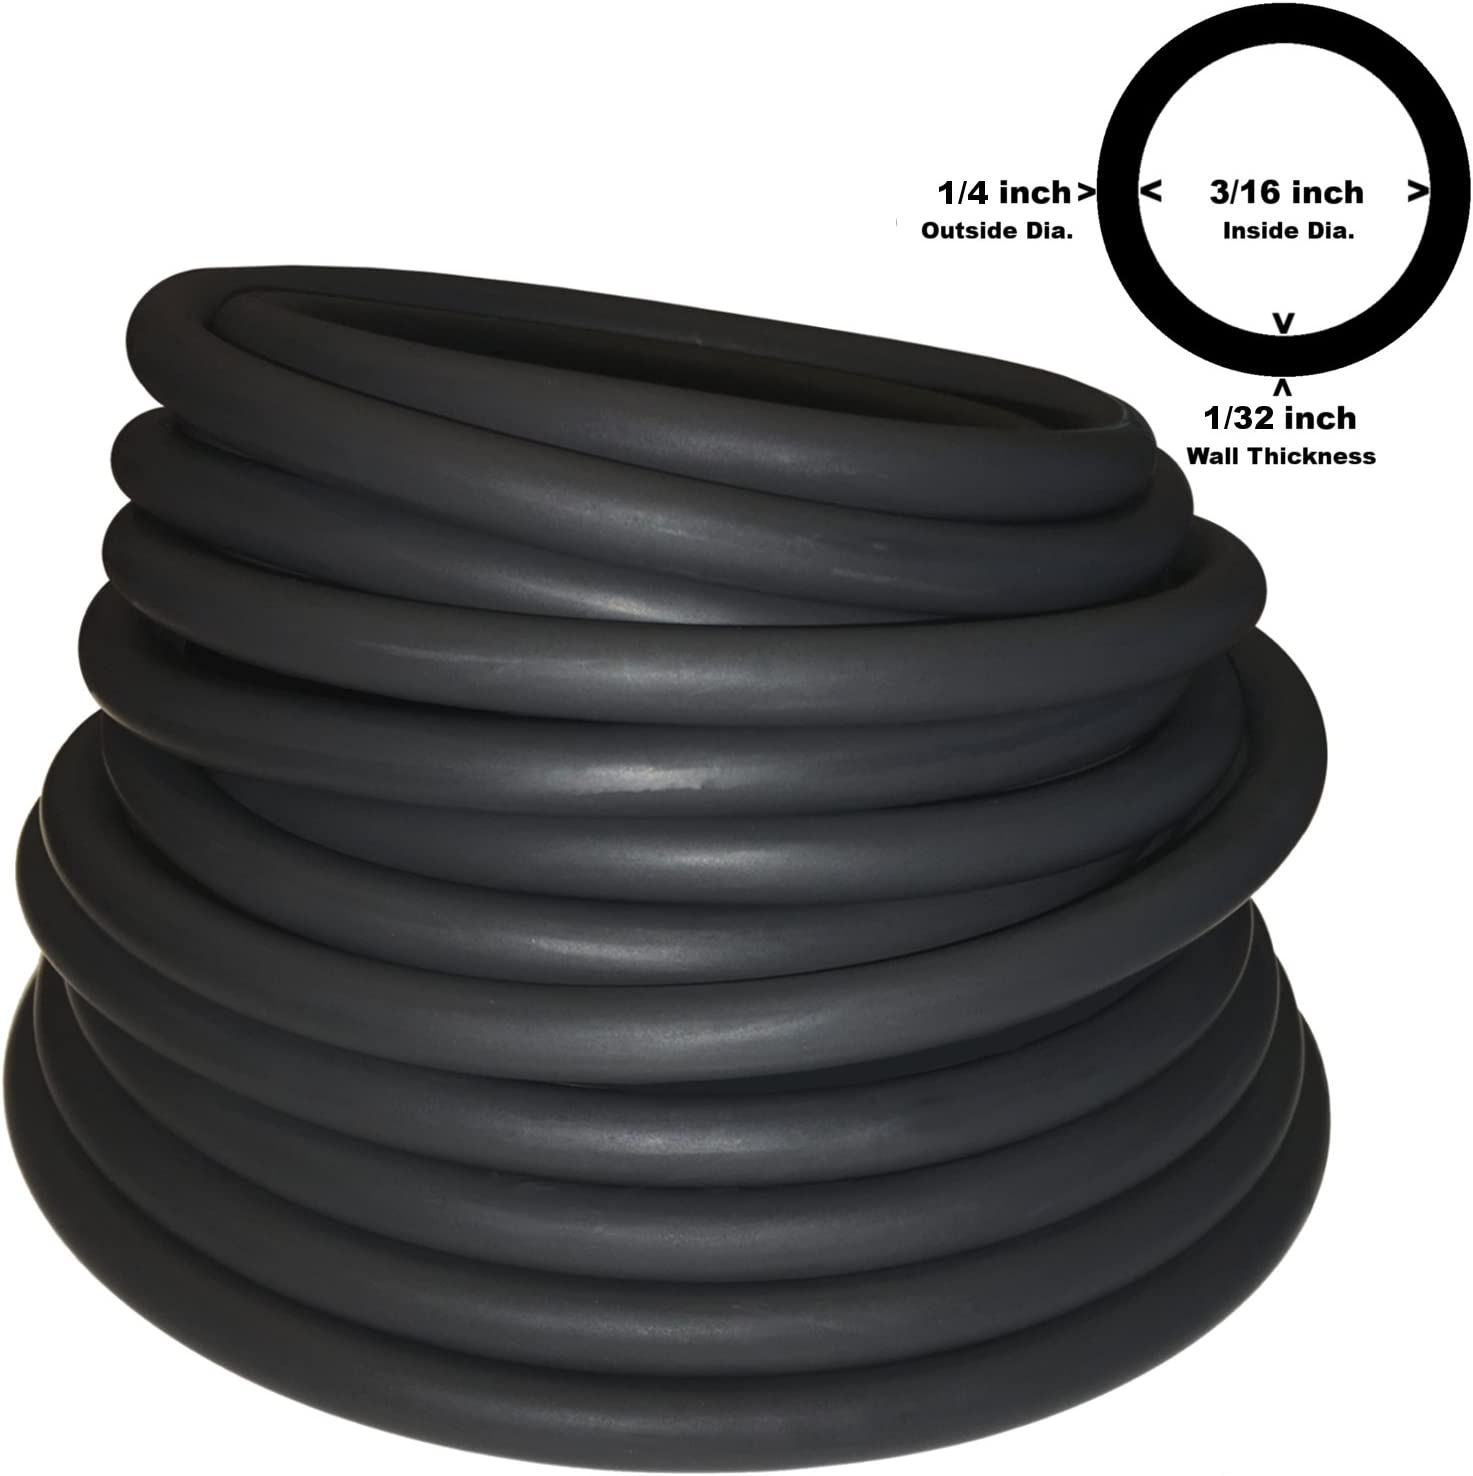 1/4in OD 3/16in ID 1/32in Wall Quality Thin Walled Black Latex Rubber Tubing ONE Continuous Piece (Select Length) (#602)